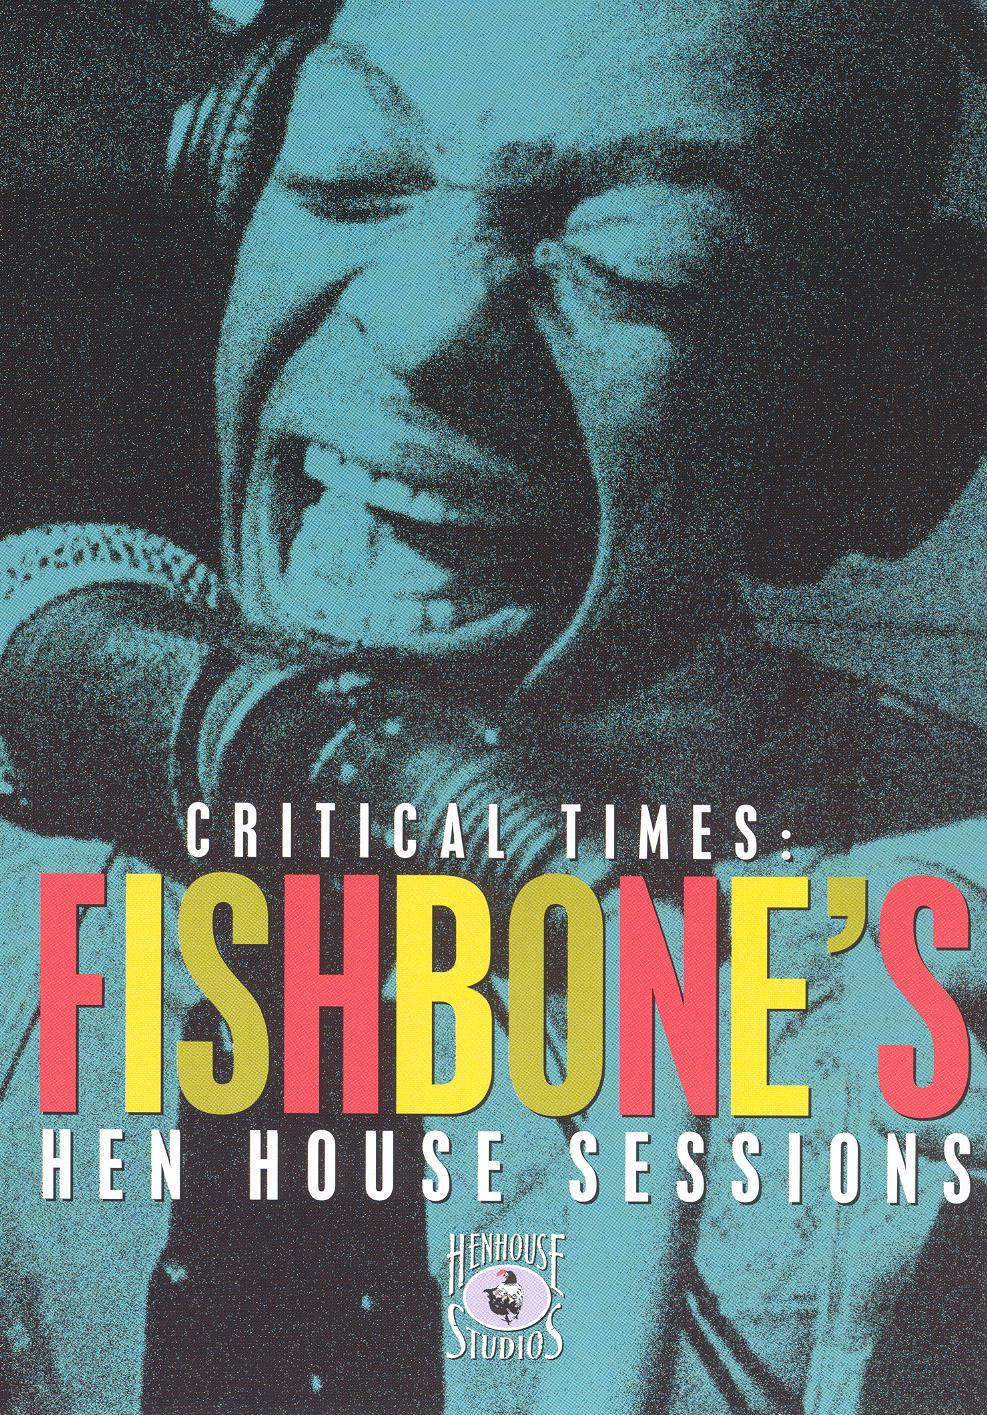 Critical Times: Fishbone's Hen House Sessions